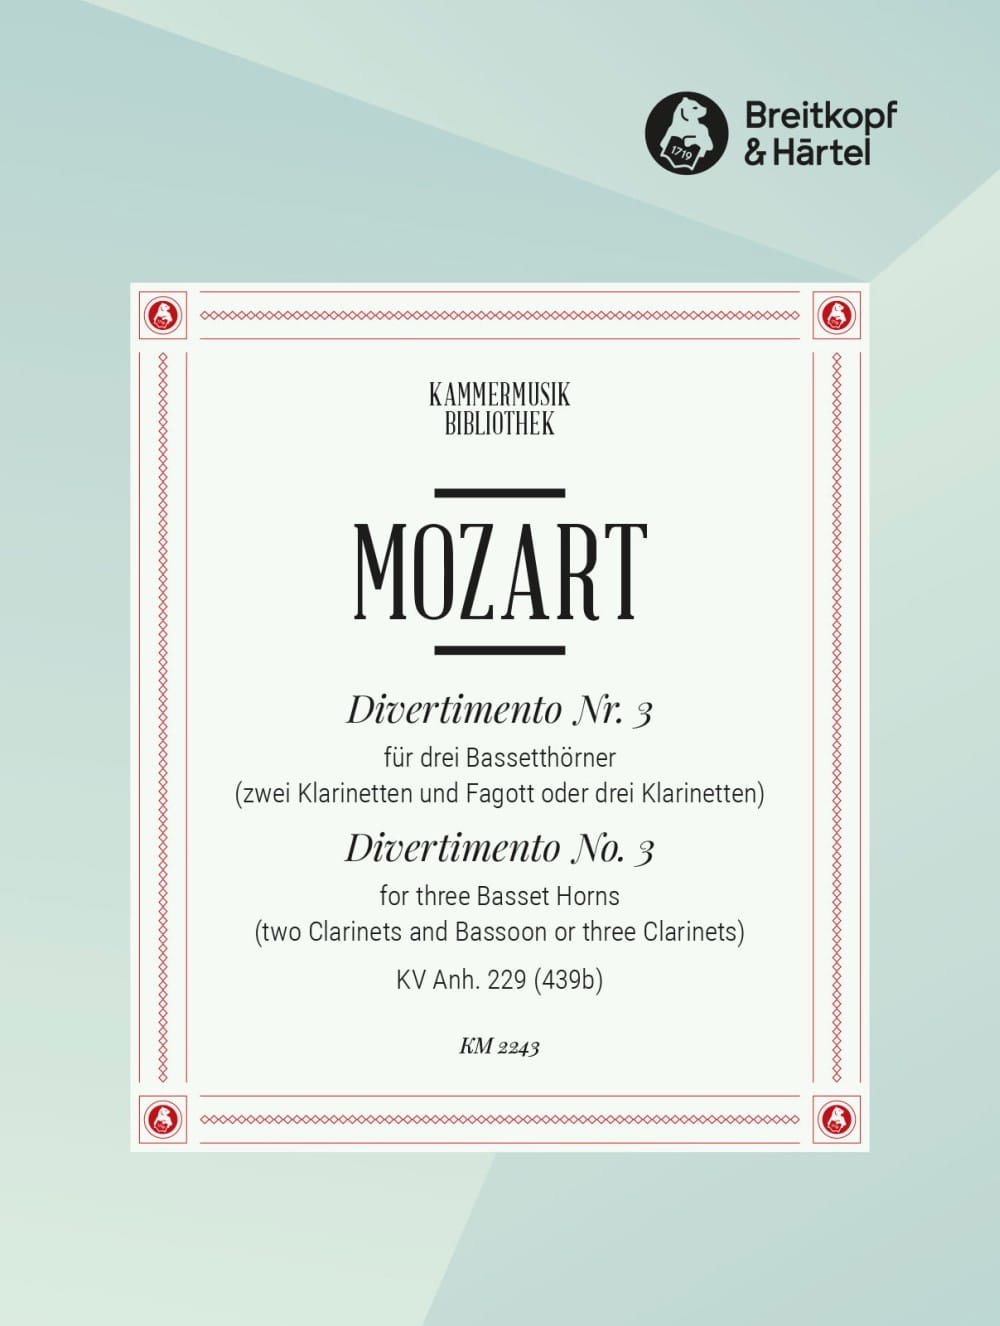 MOZART - Divertimento Nr. 3 - 3 Bassetthörner 2 Klar. Fag. / 3 Klar. - Partition - di-arezzo.co.uk